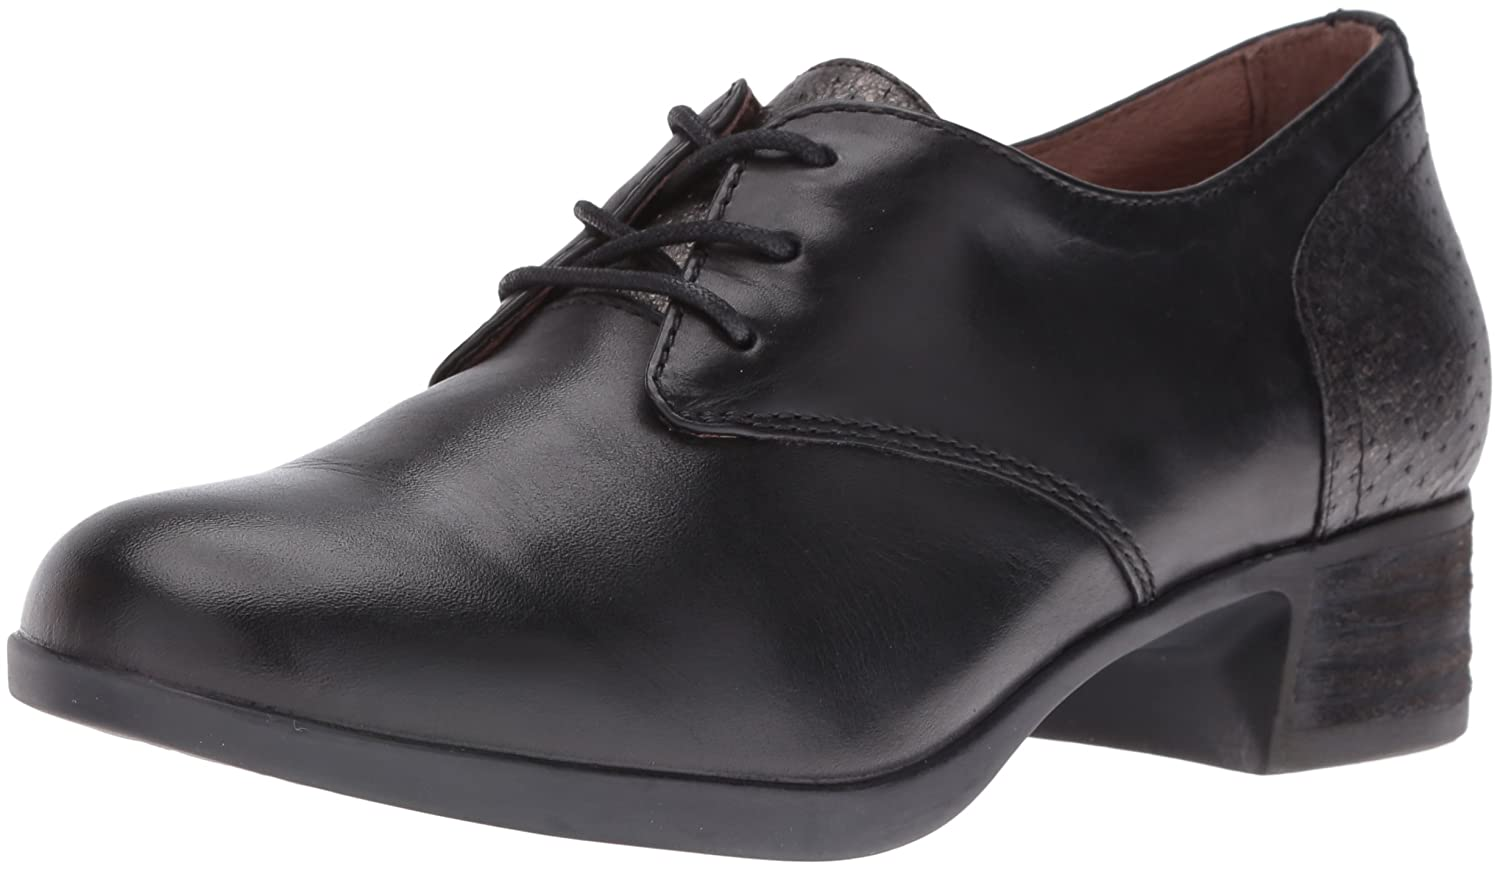 Dansko Women's 'Louise' Round Toe Derby qVci1Bp